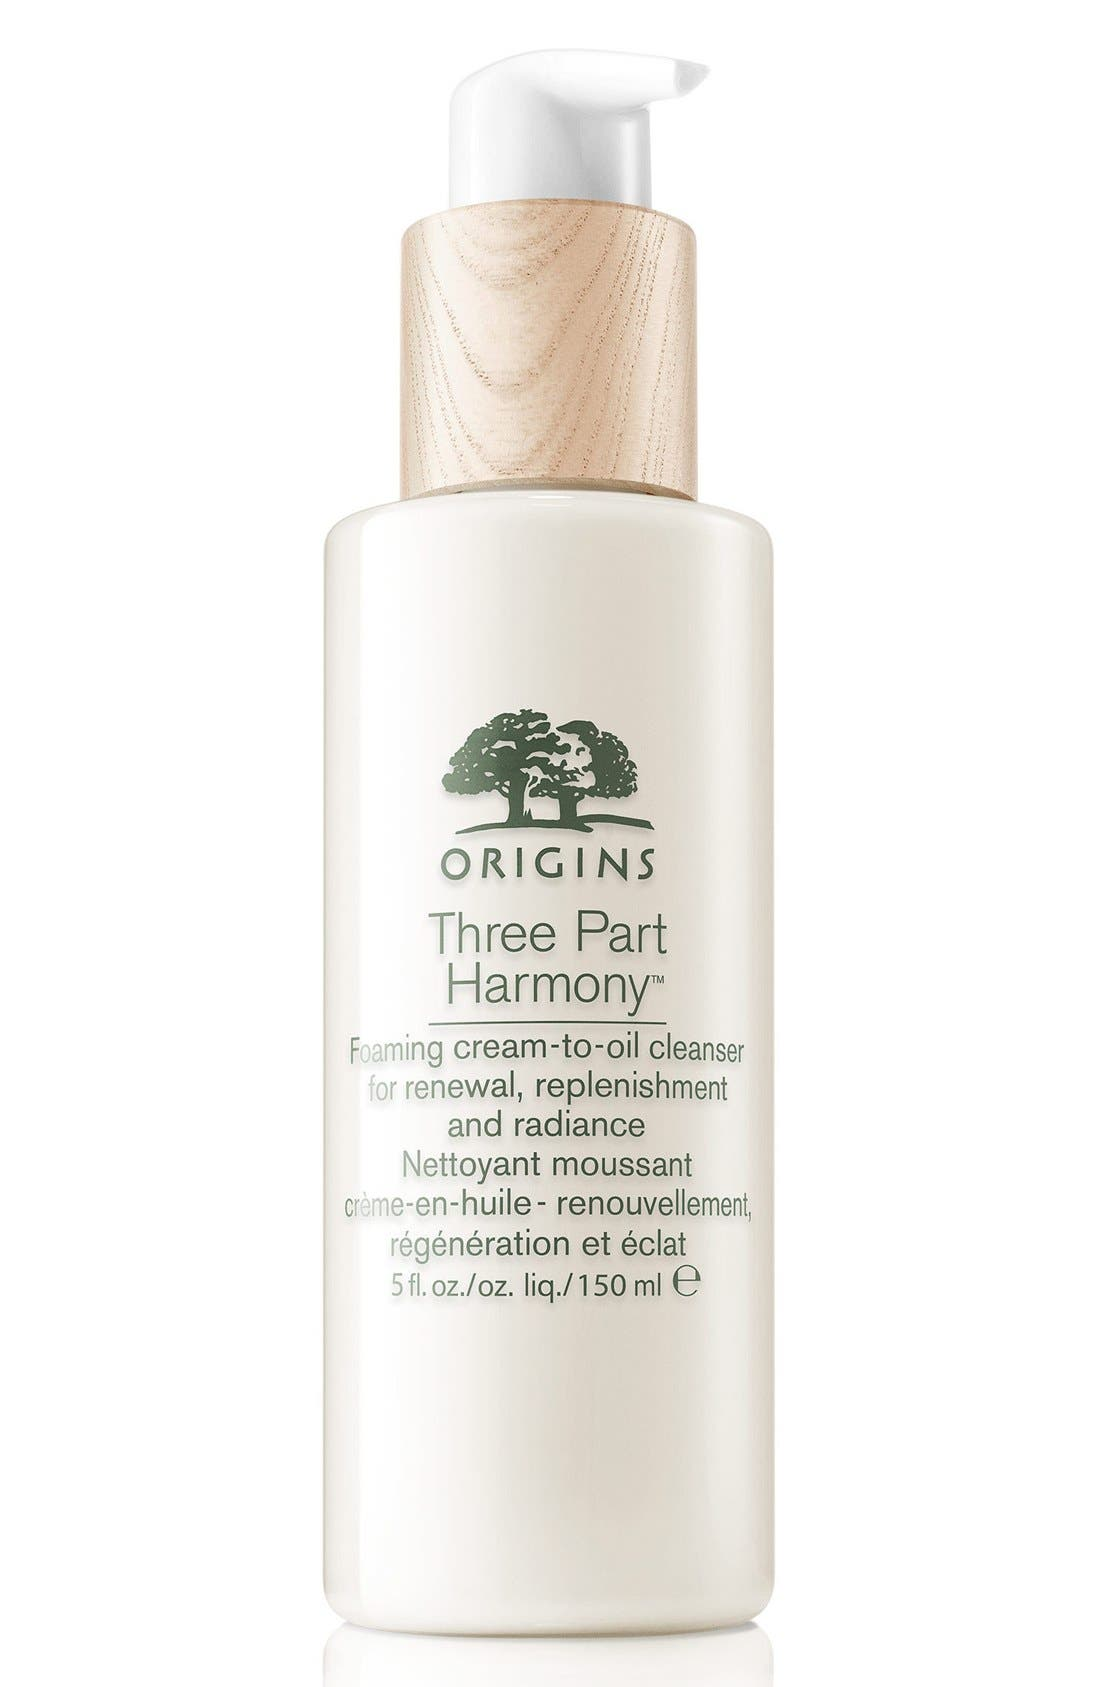 Origins Three Part Harmony Foaming Cream-to-Oil Cleanser for Renewal, Replenishment & Radiance